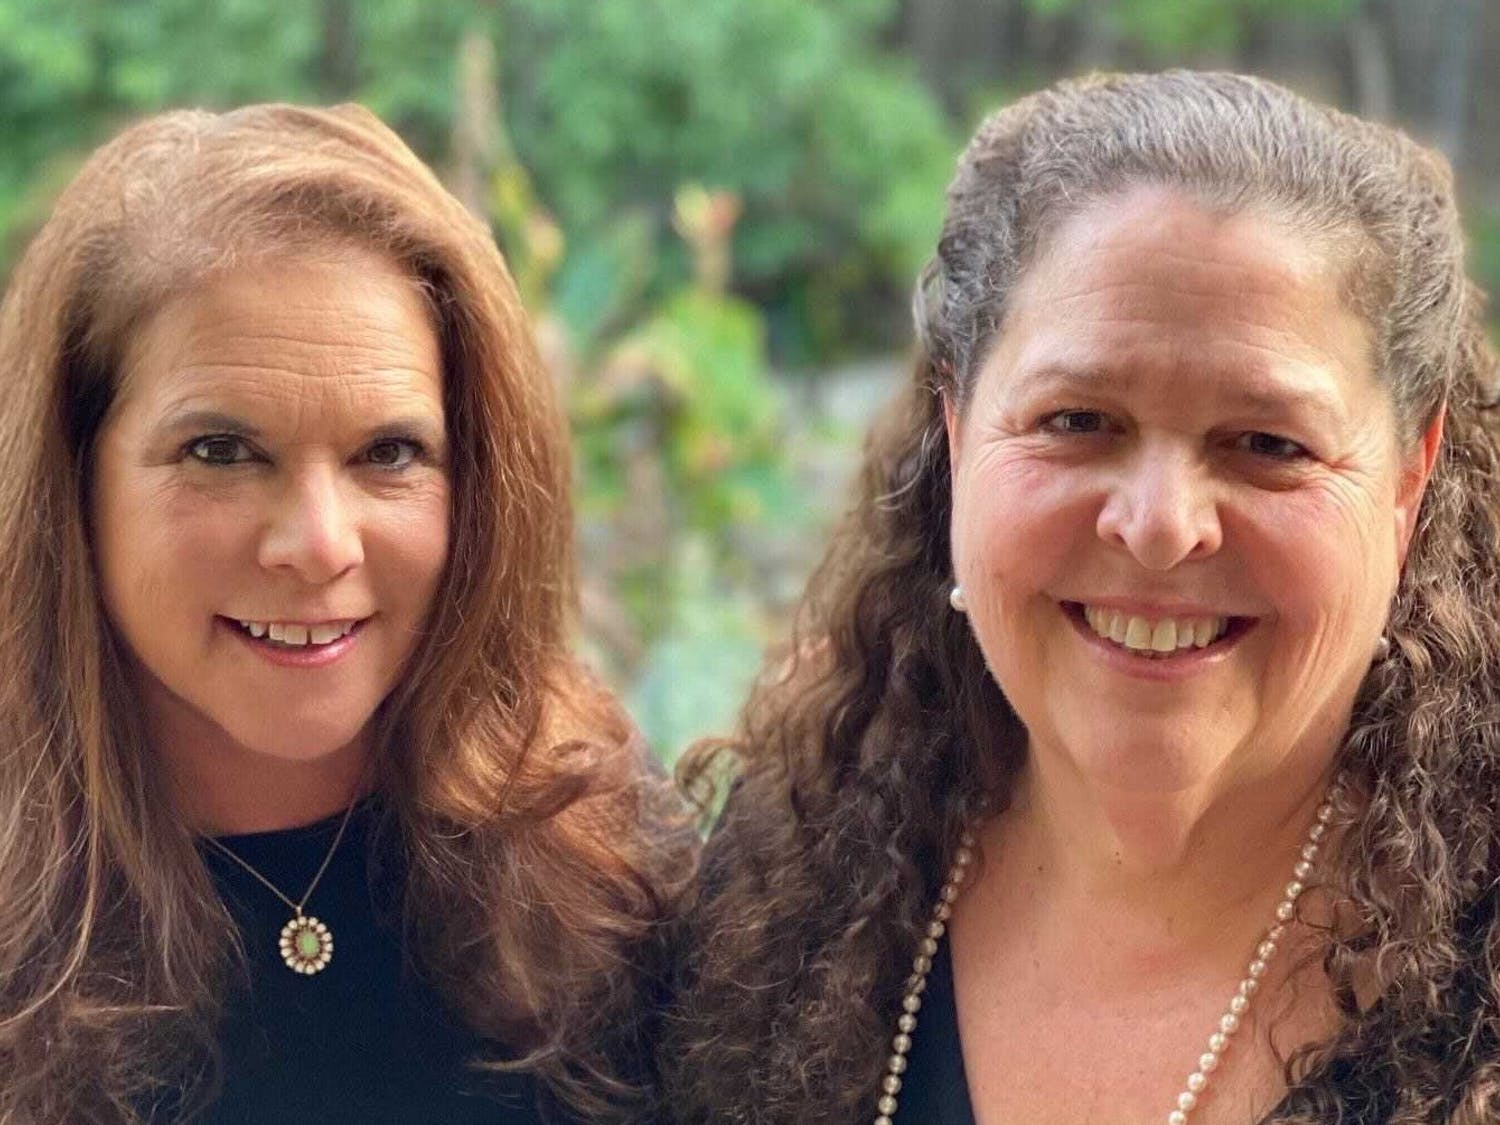 Randi Emerman (left) and Carol Marshall (right), co-founders of Film Fest 919, smile together for a portrait. Photo courtesy of Carol Marshall.